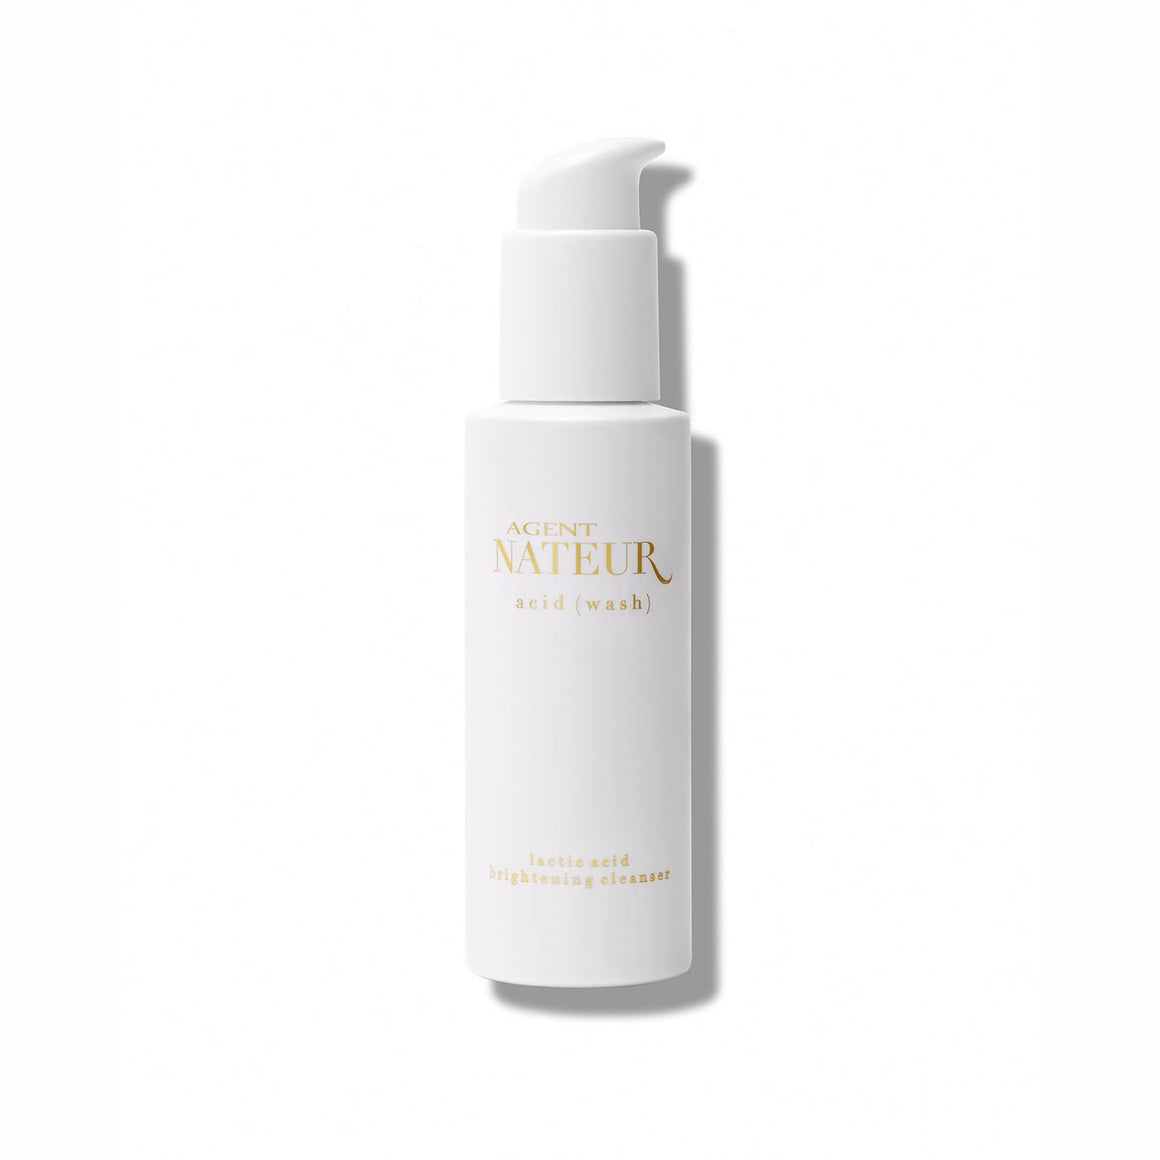 Agent Nateur Acid (wash) Lactic Acid Brightening Cleanser